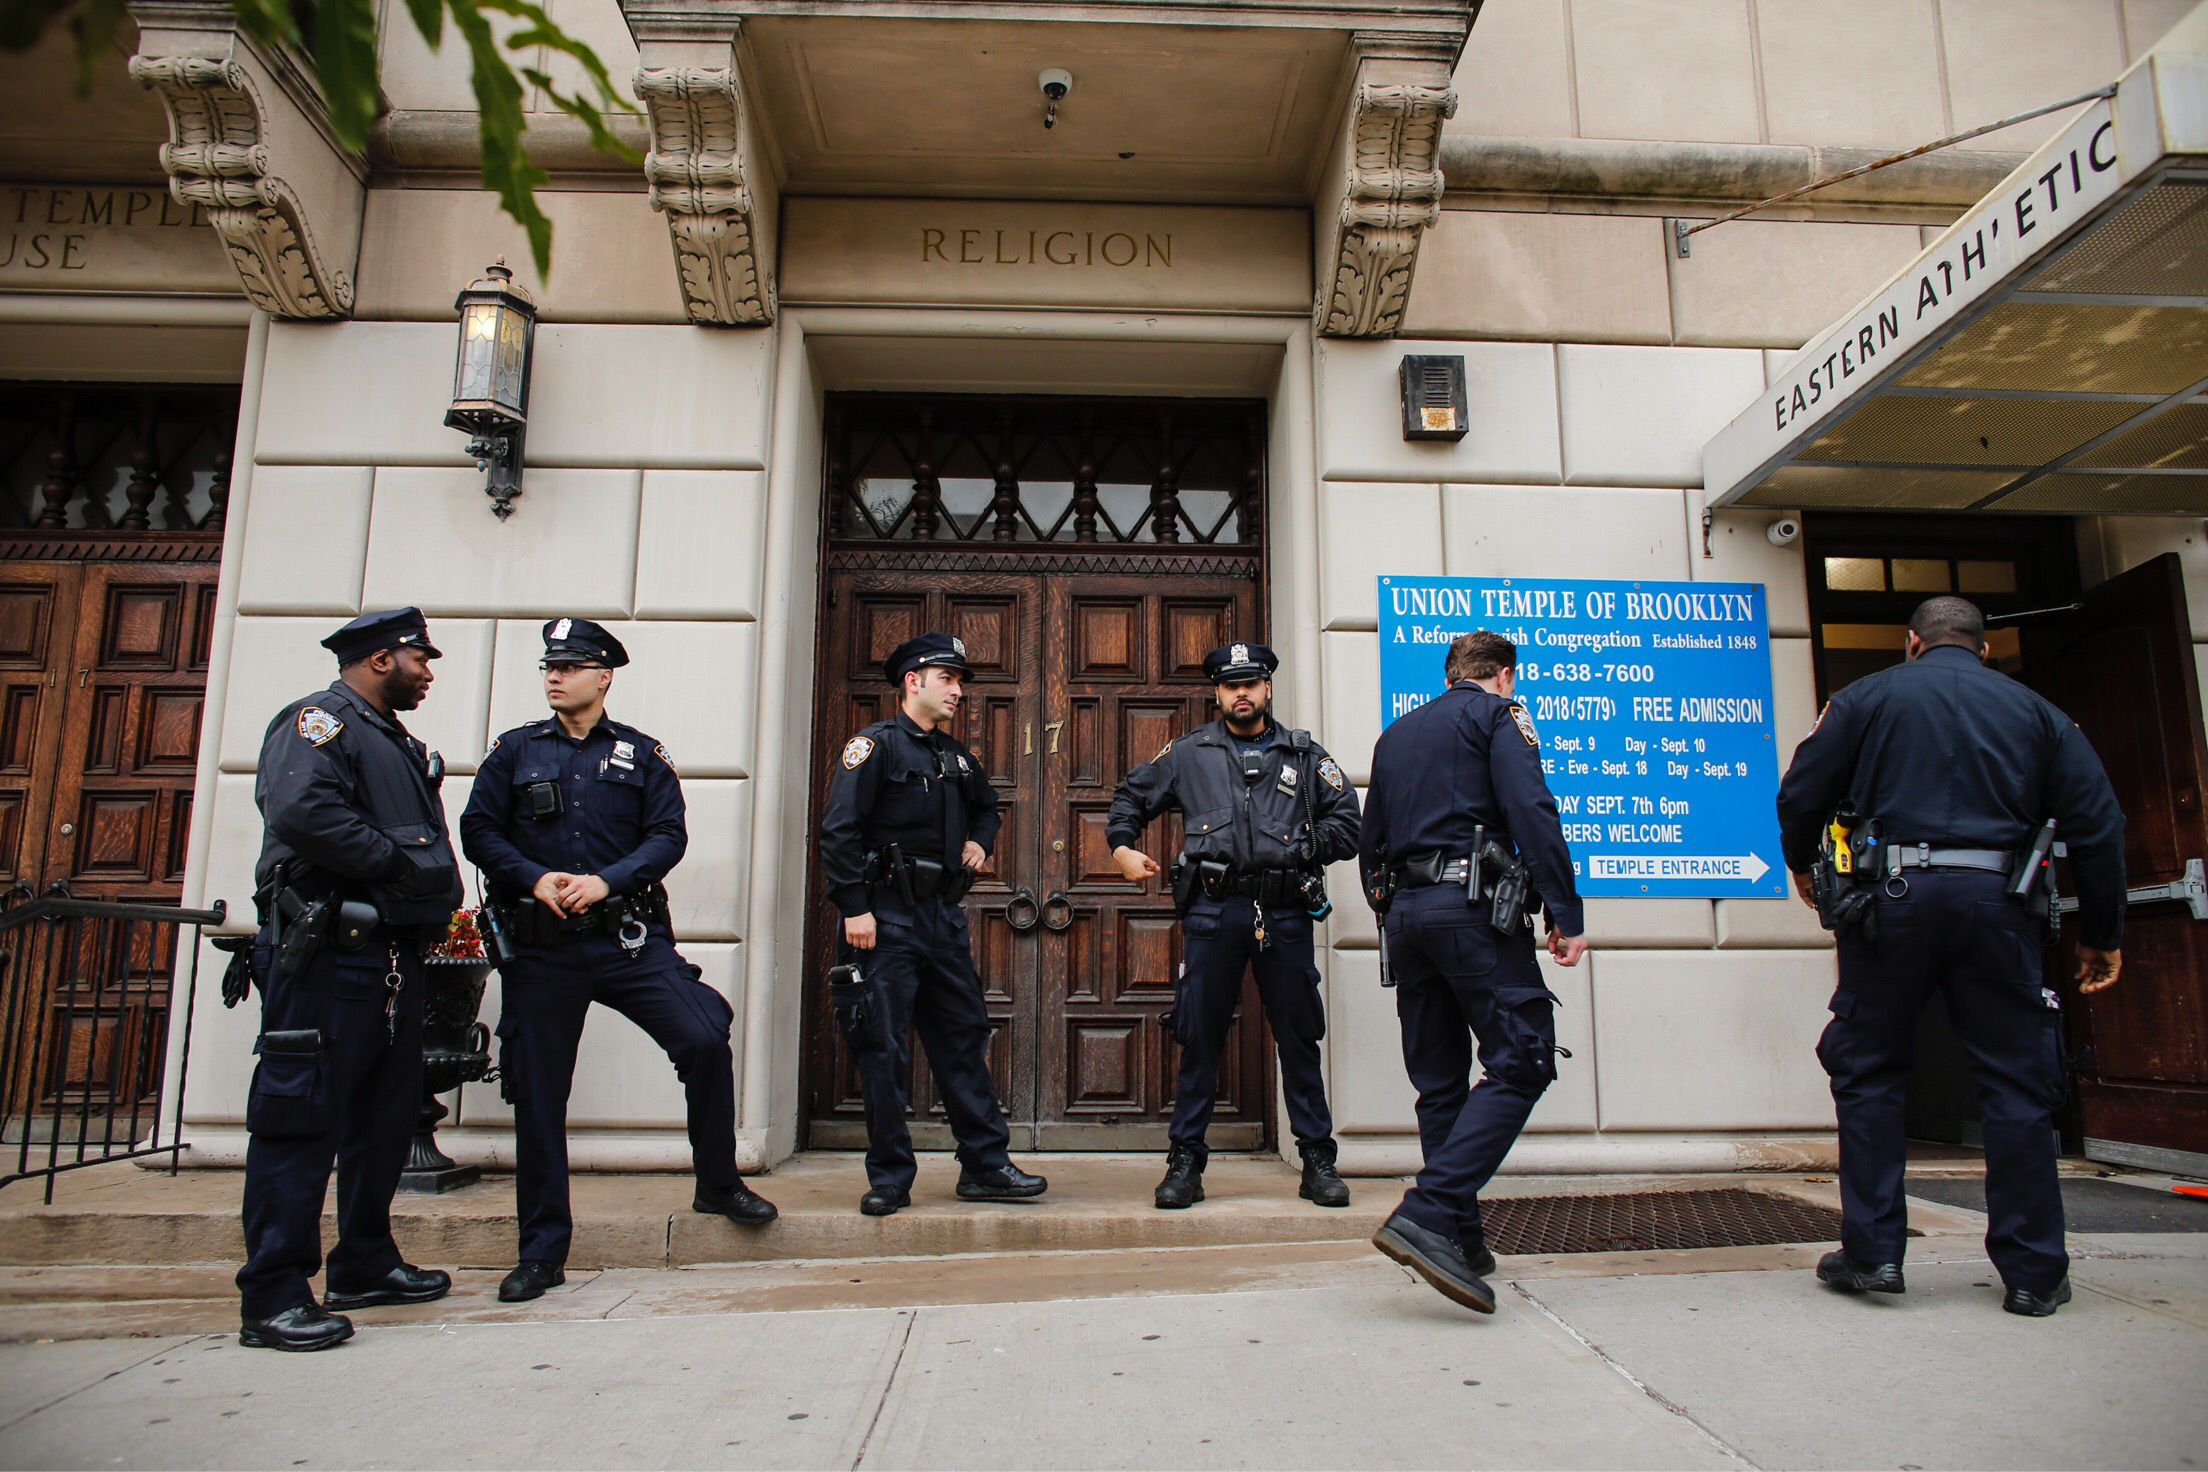 NYPD officers stand guard at the door of the Union Temple of Brooklyn on November 2, 2018 in New York City. - New York police were investigating anti-Semitic graffiti found inside a Brooklyn synagogue that forced the cancellation of a political event less than a week after the worst anti-Semitic attack in modern US history. (KENA BETANCUR/AFP/Getty Images)